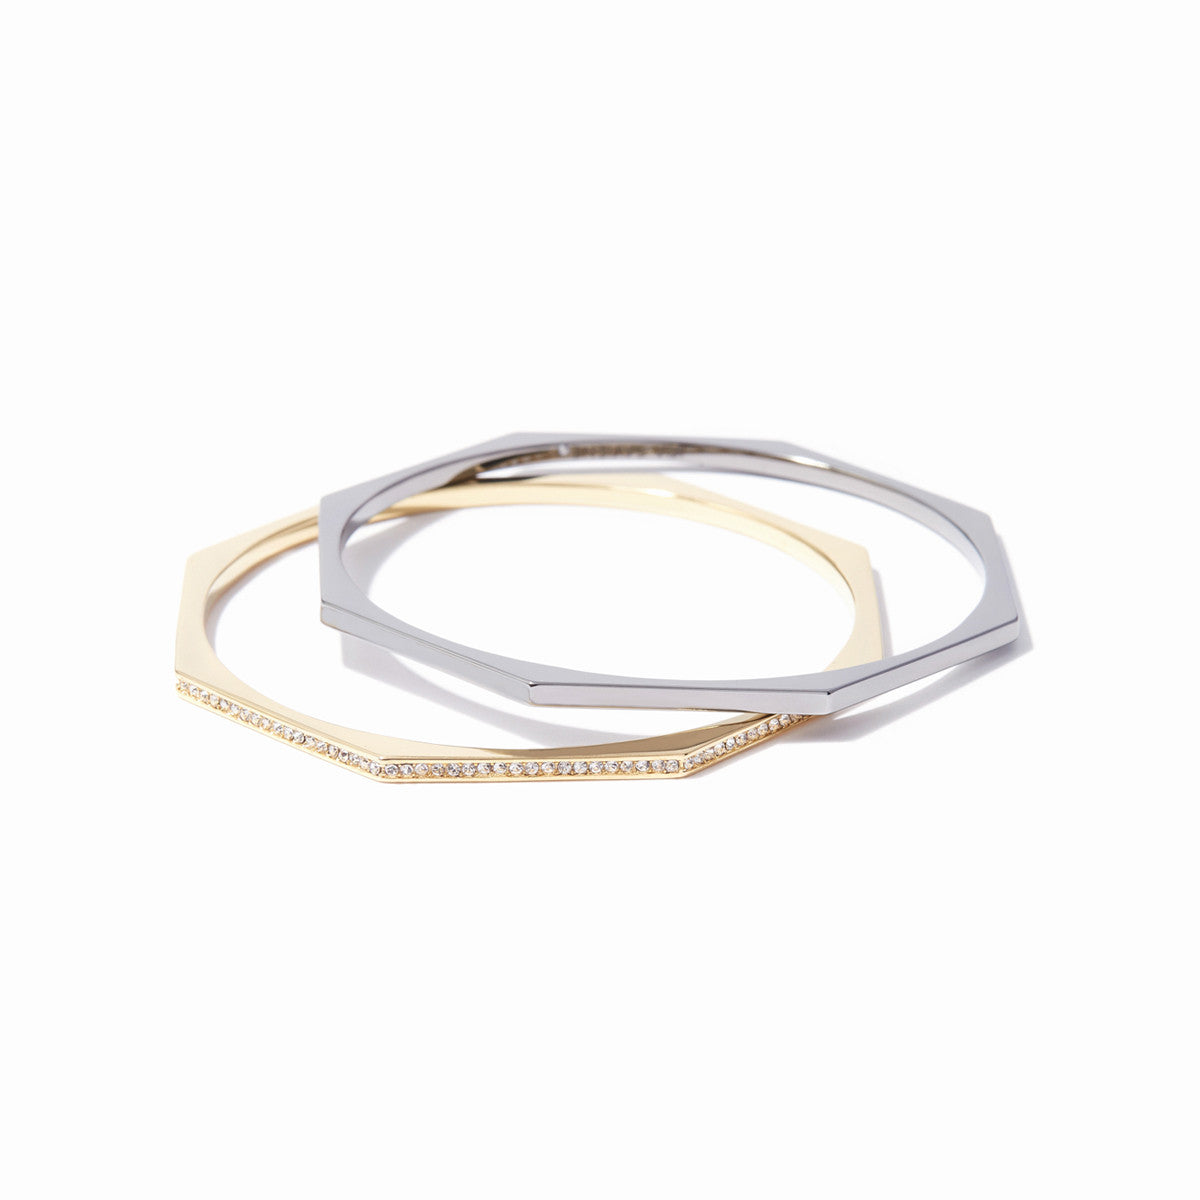 Aris Pave Bangle Set - 2 Tone Gold and Hematite